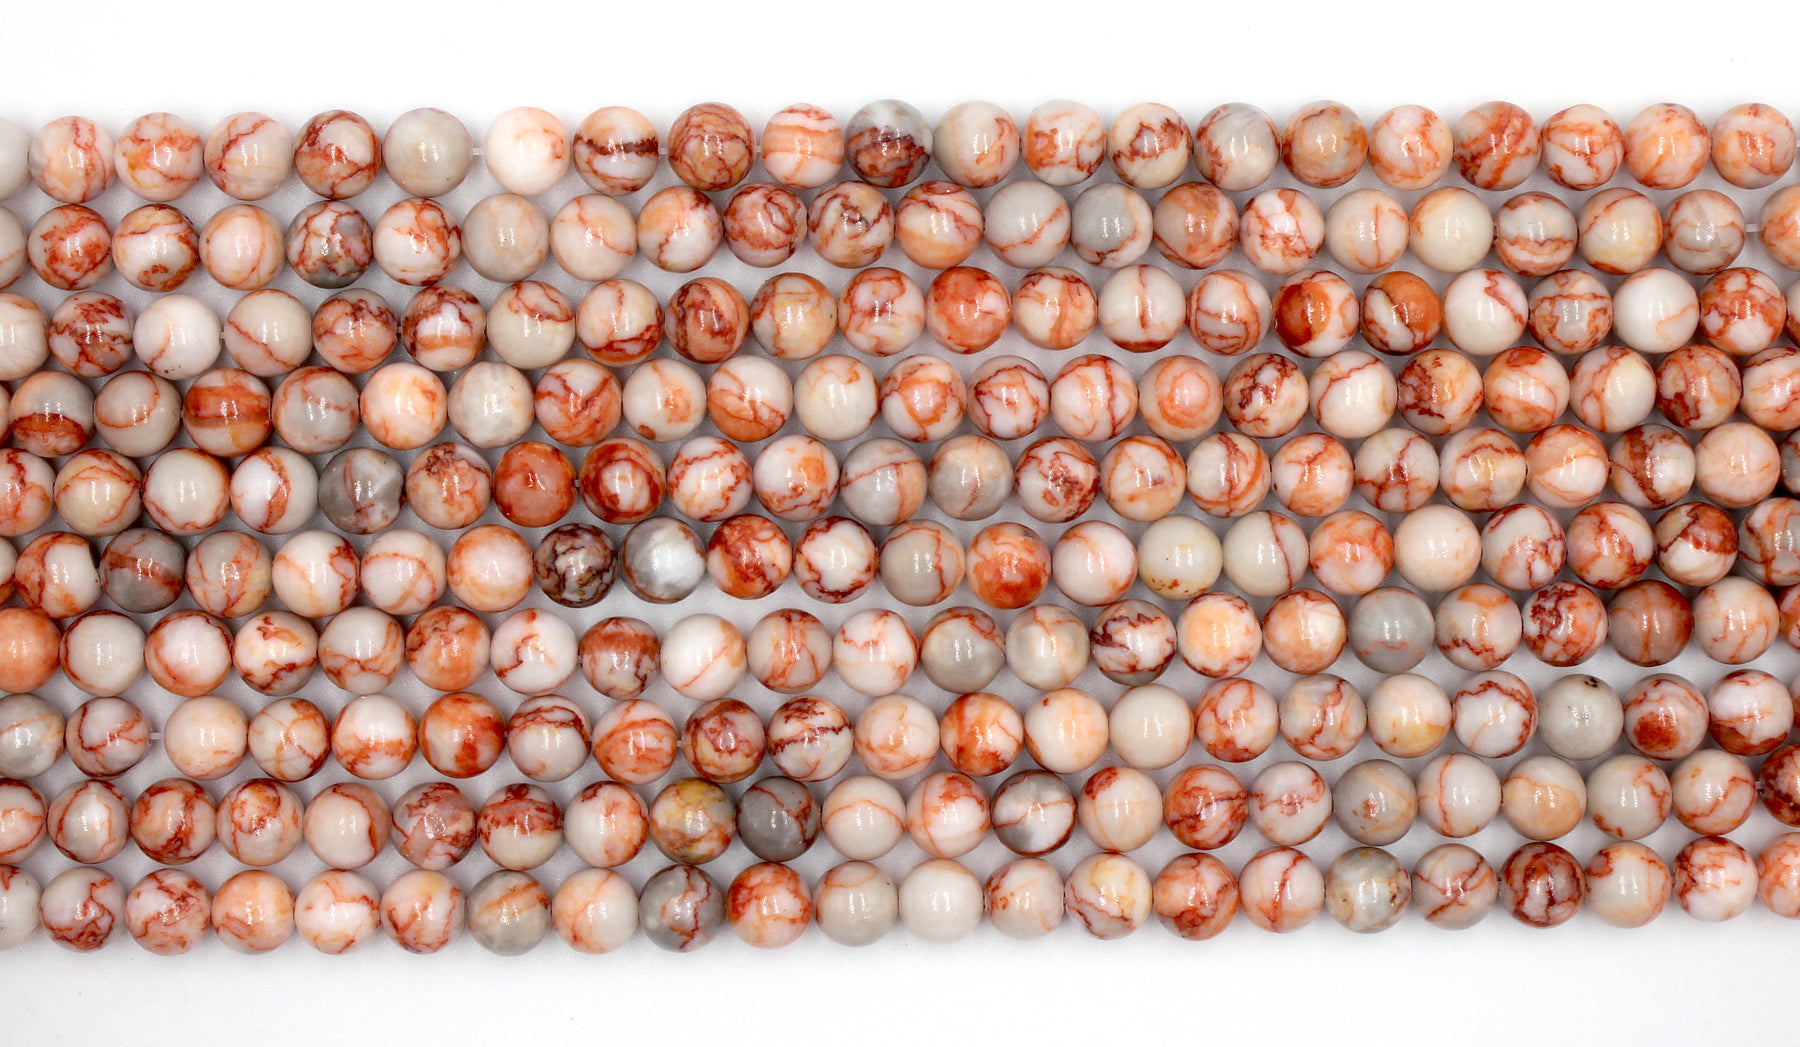 red veined jasper beads 8mm natural jasper gemstone beads, jasper rounds, round beads, gemstone beads, 8mm round beads,